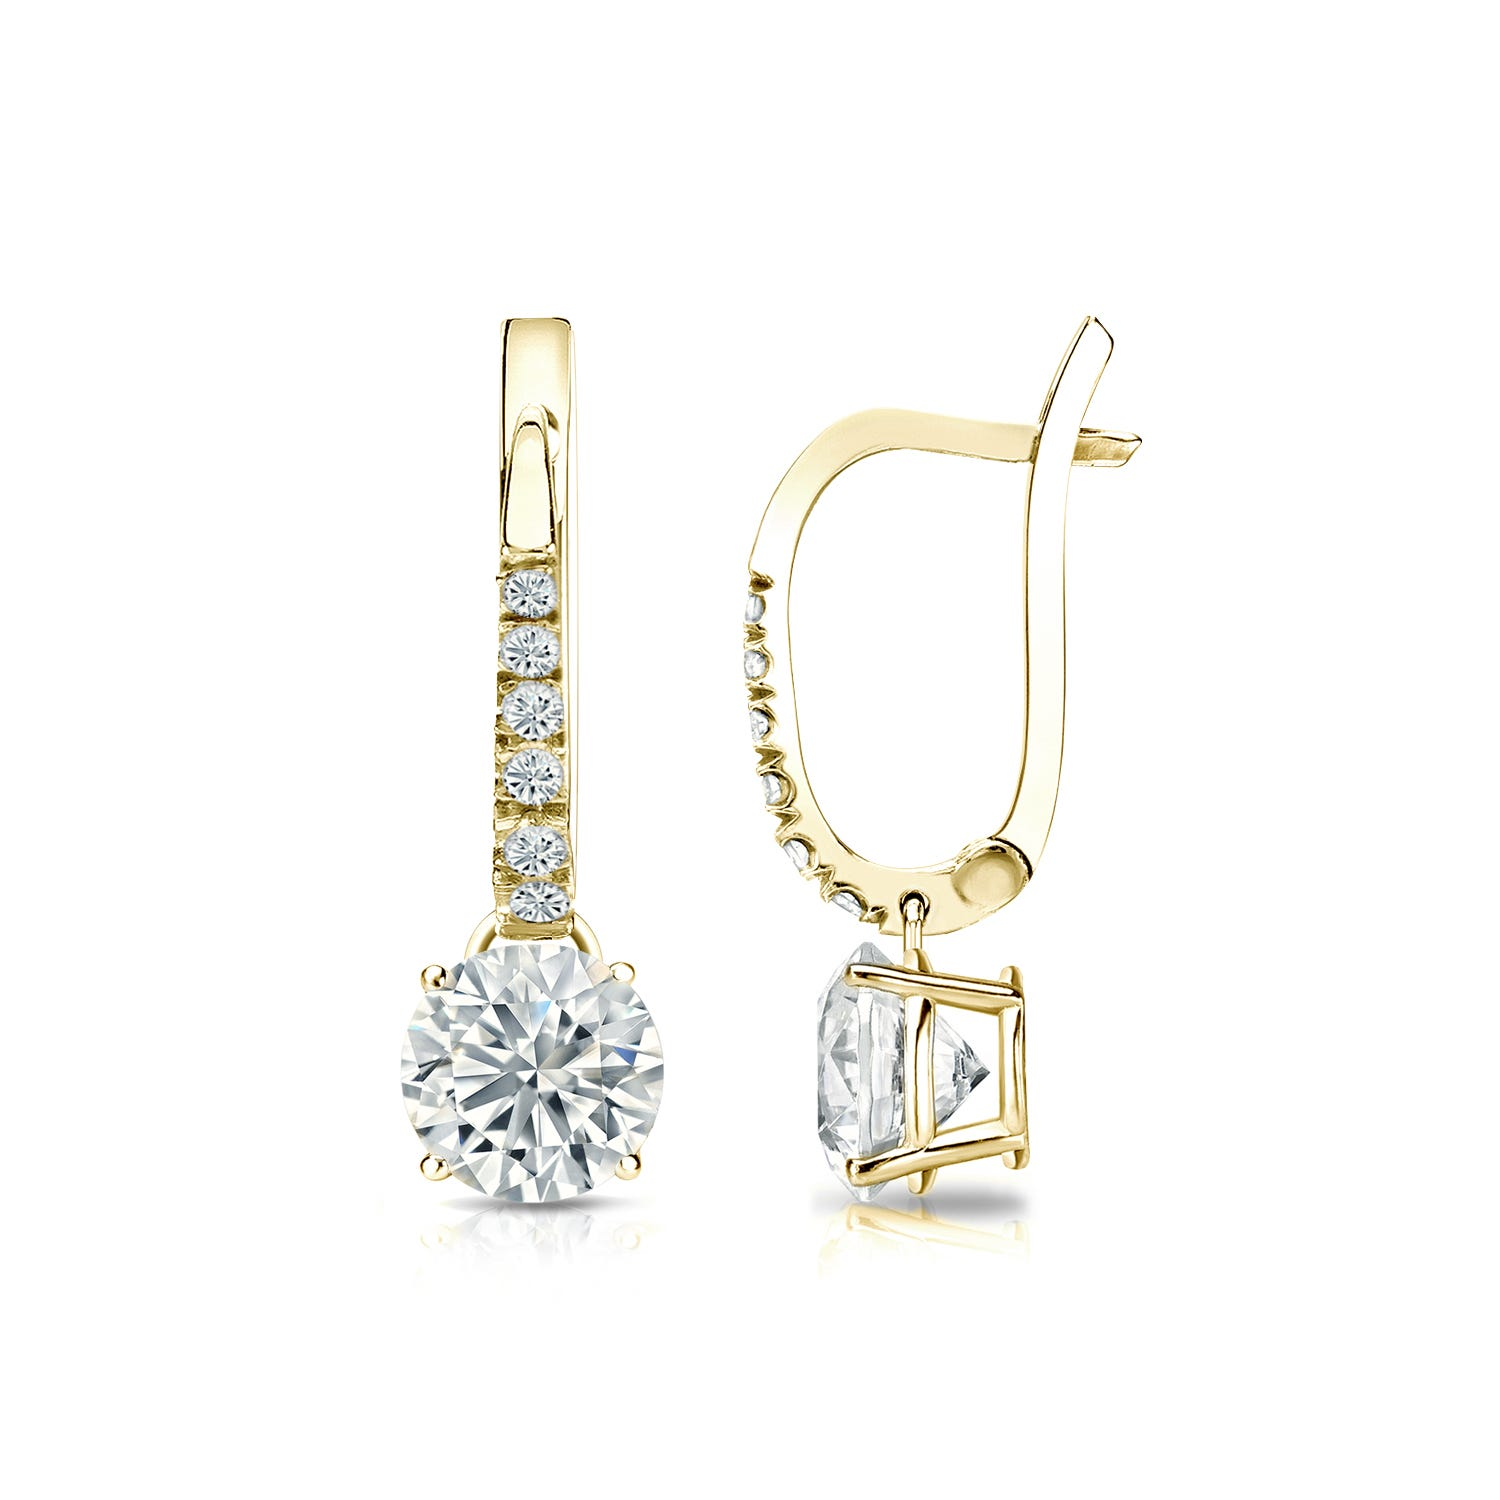 Diamond 4-Prong Round Drop Earrings 1ctw. In 14k Yellow Gold I1 Clarity